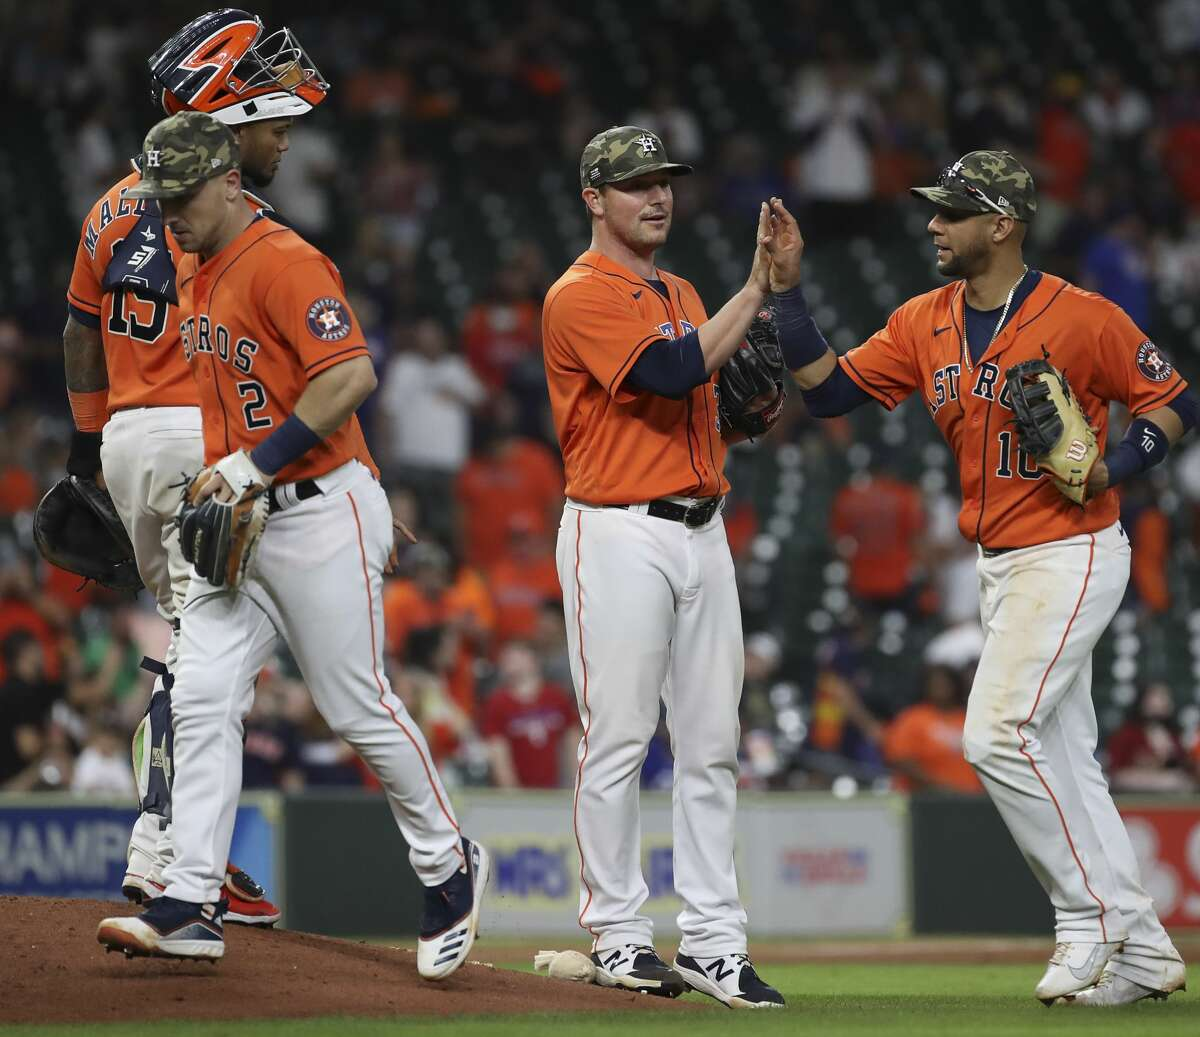 Houston Astros catcher Martin Maldonado (15), third baseman Alex Bregman (2), relief pitcher Joe Smith (38) and first baseman Yuli Gurriel (10) celebrate after the Houston Astros beat the Texas Rangers during an MLB game Friday, May 14, 2021, at Minute Maid Park in Houston.